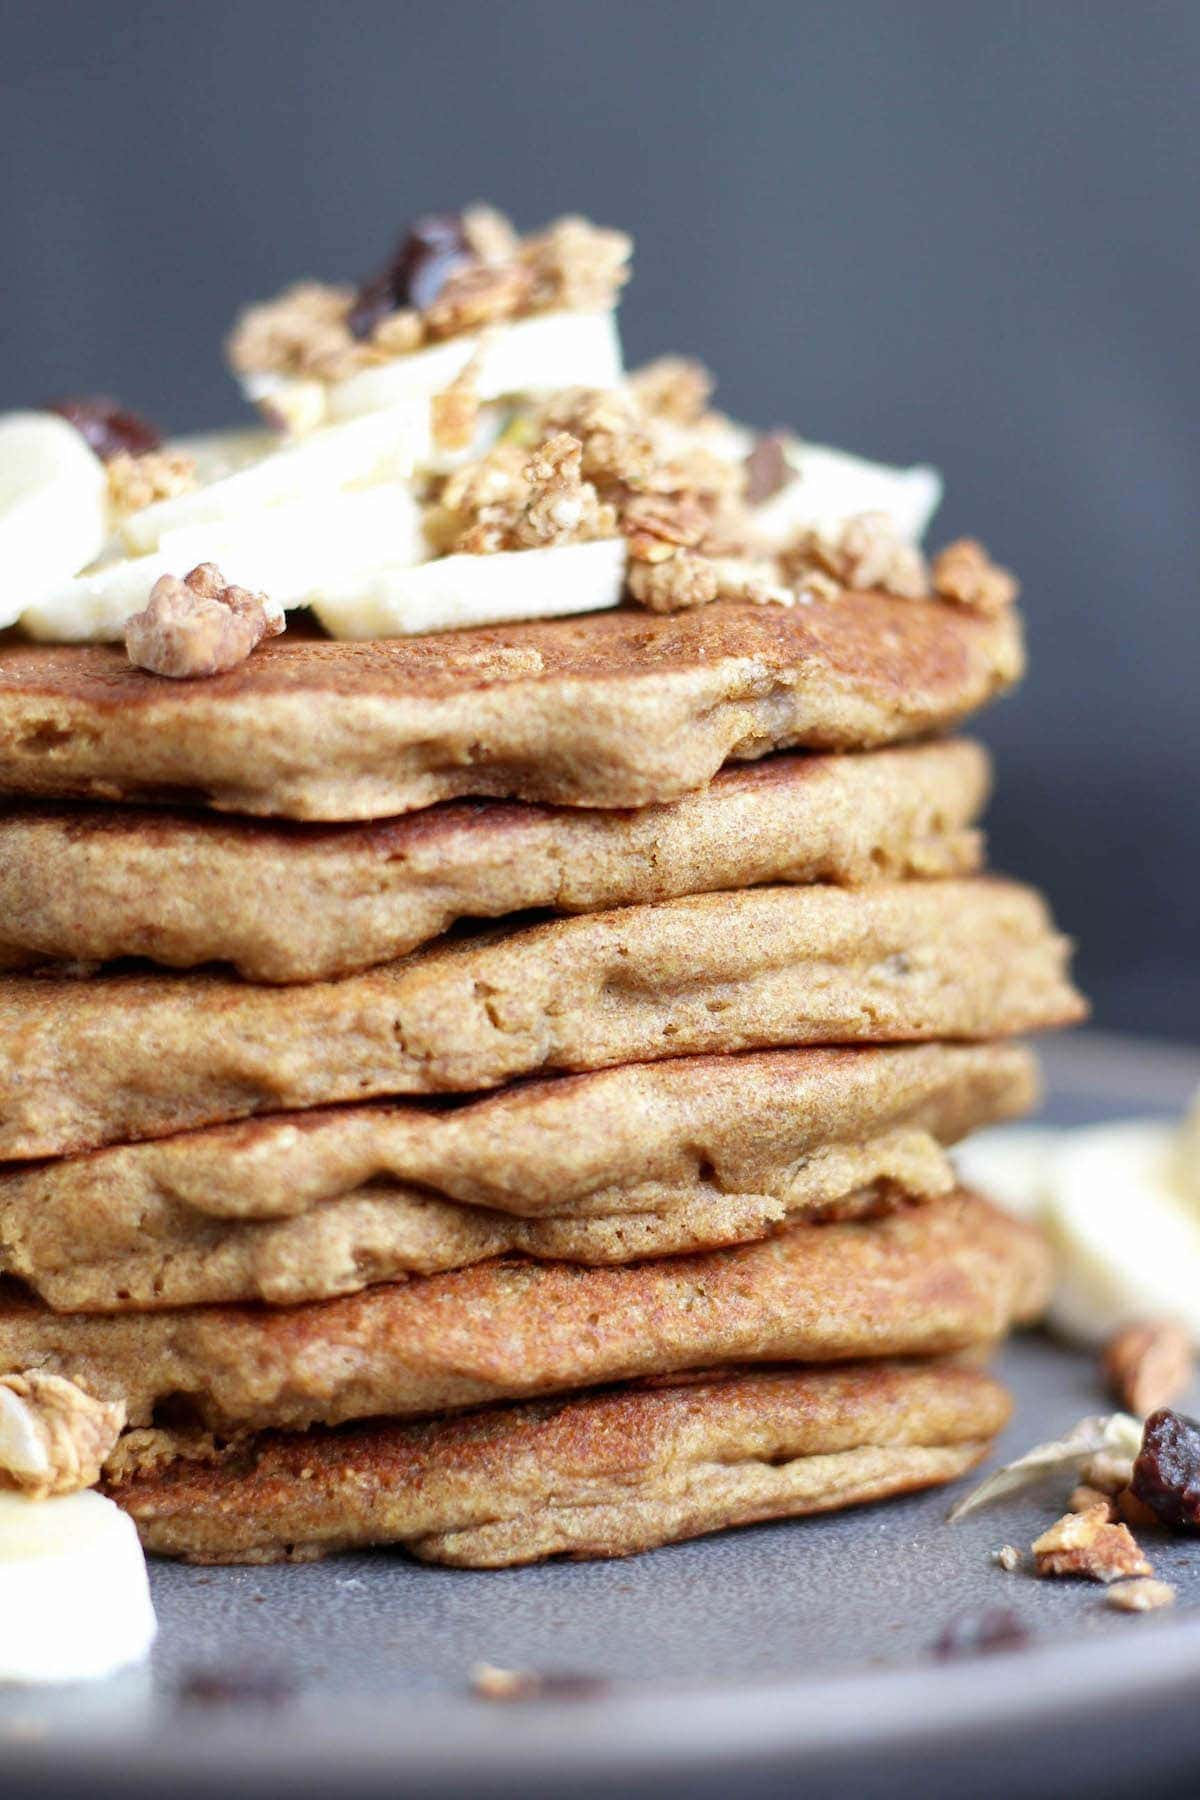 A tall stack of gluten free banana pancakes topped with banana and granola